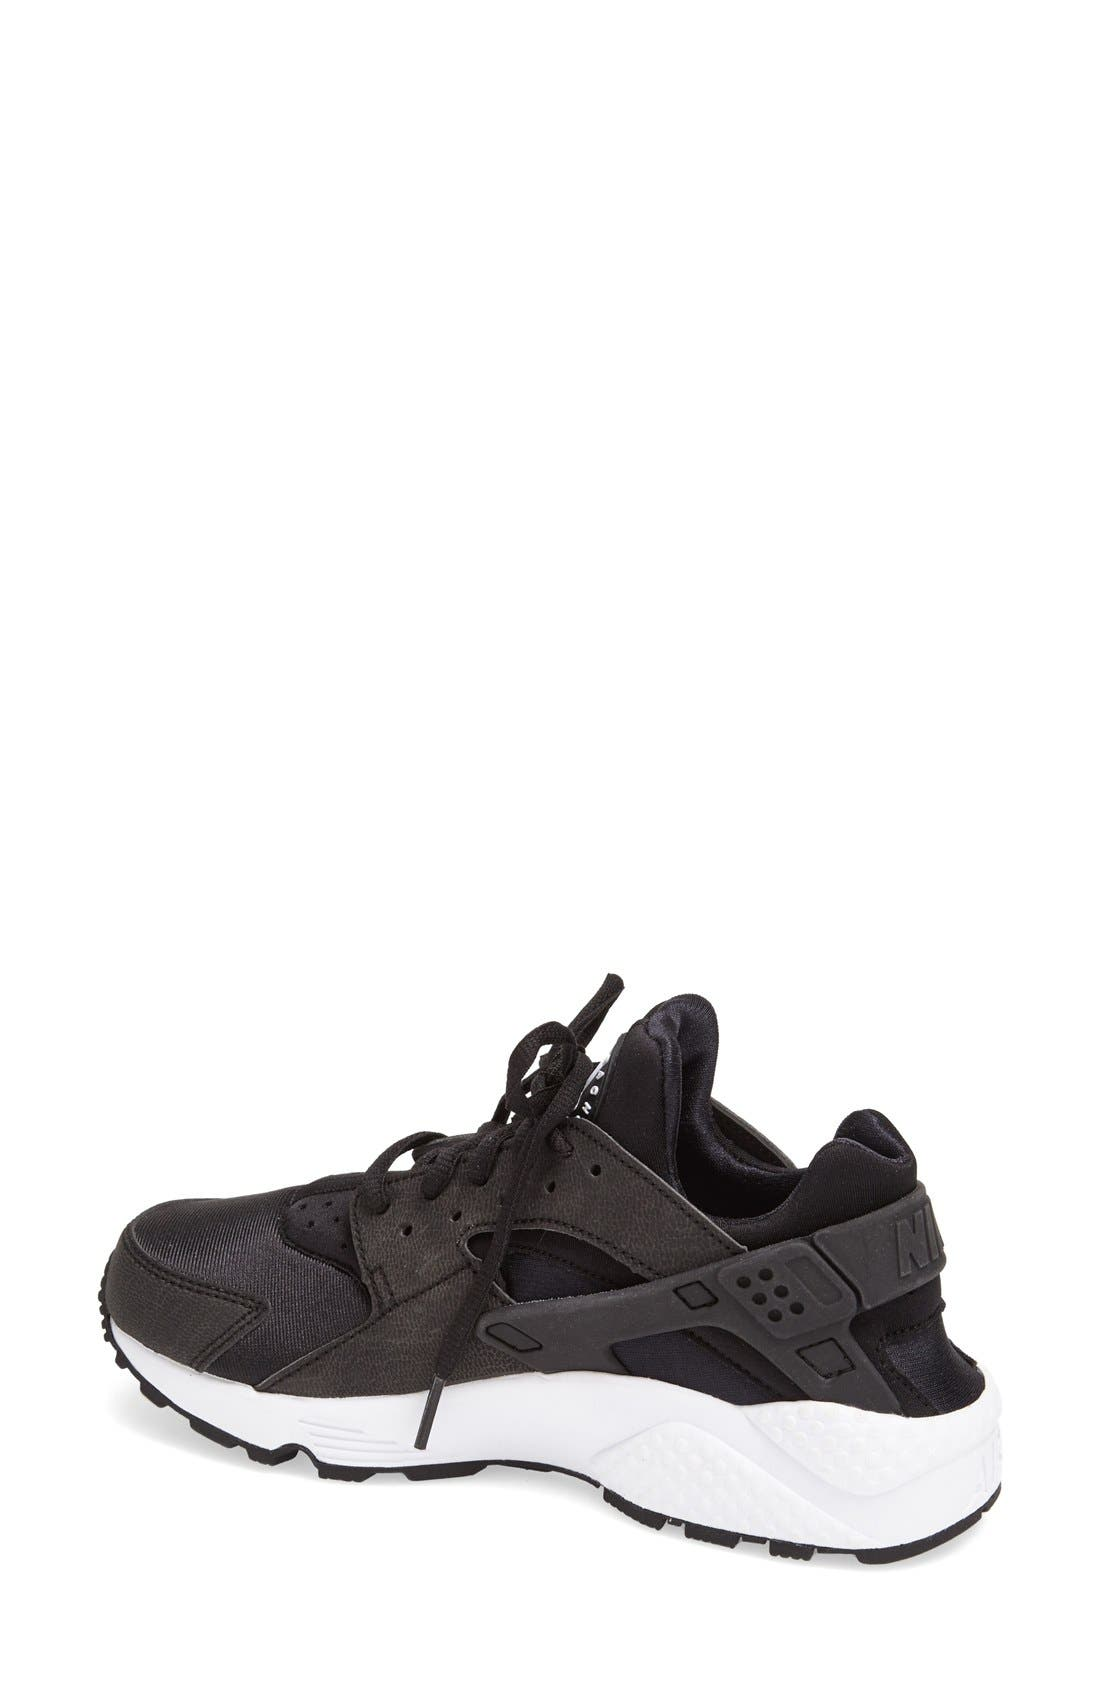 'Air Huarache' Sneaker,                             Alternate thumbnail 2, color,                             Black/ White